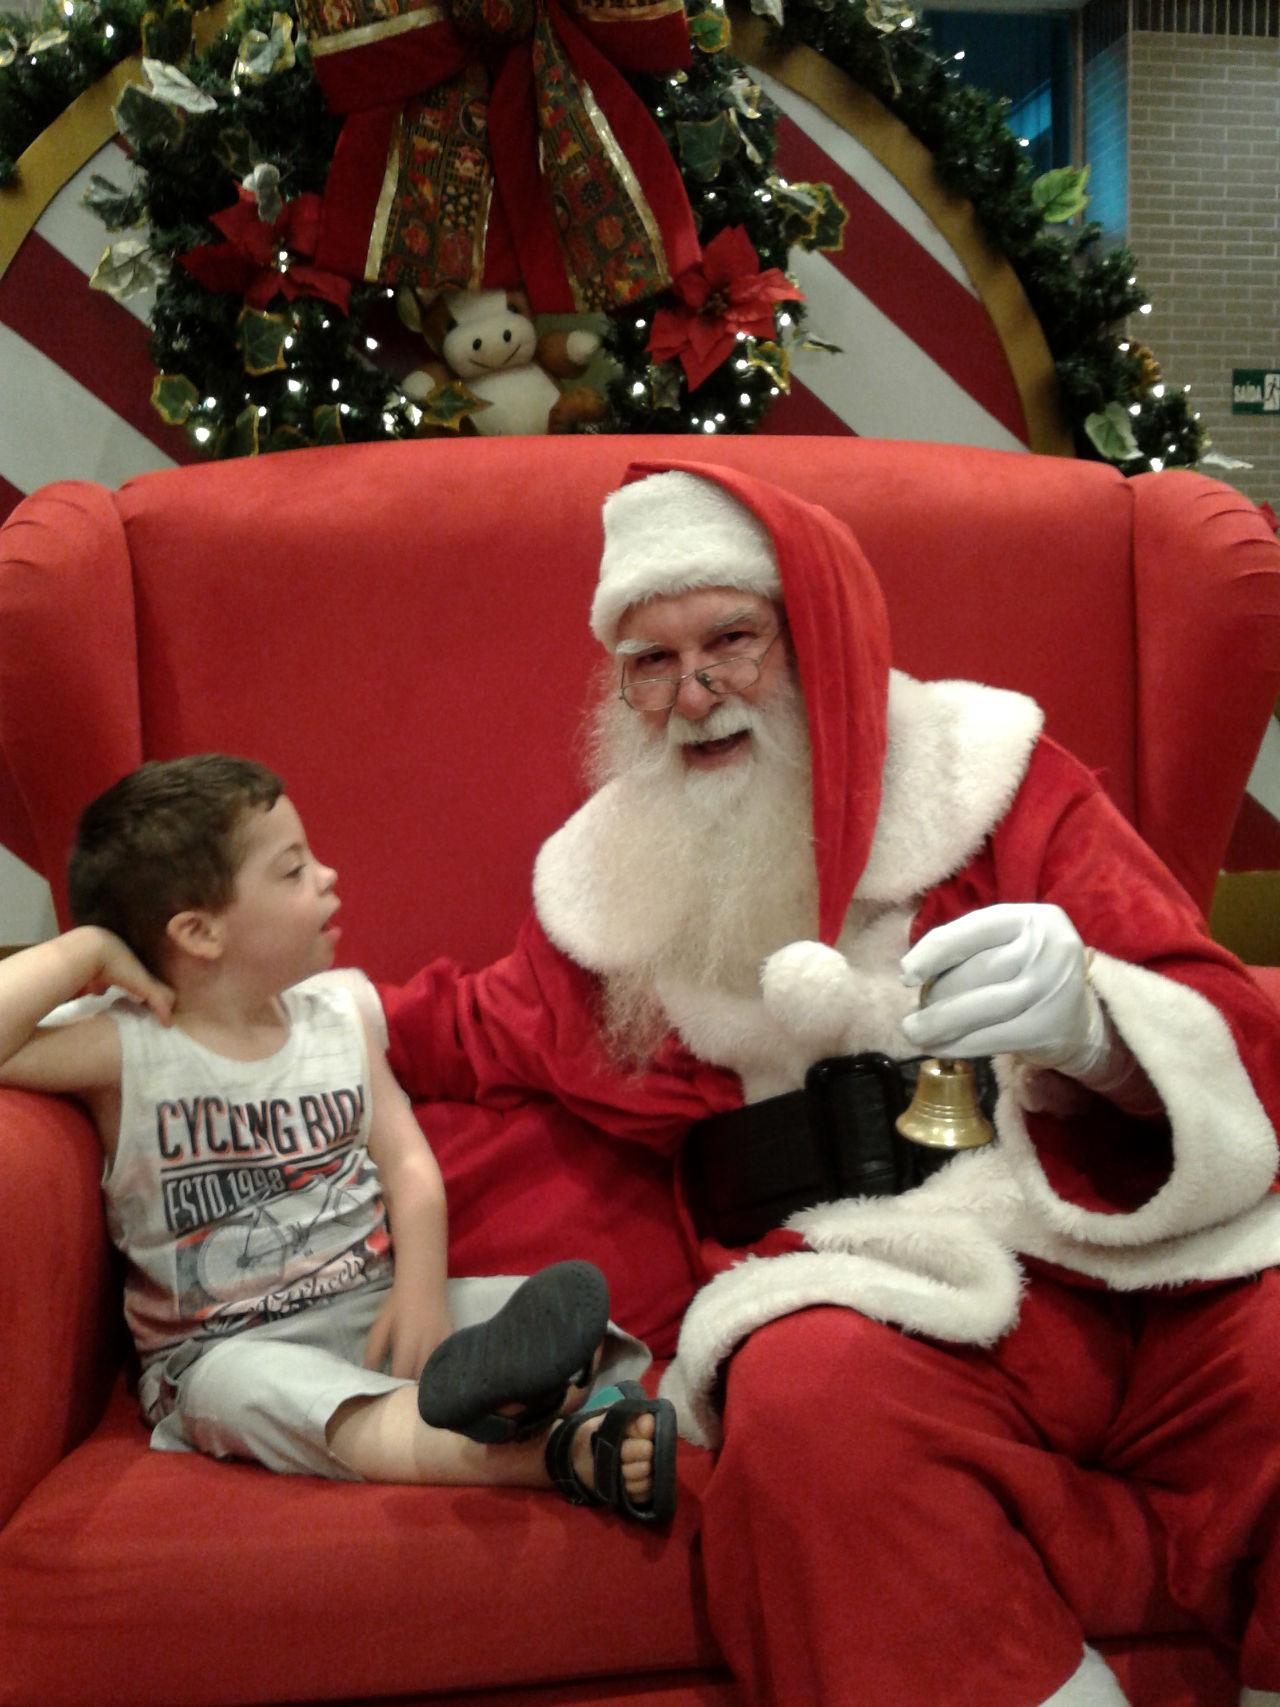 Samuel Zoeller and Father Christmas!